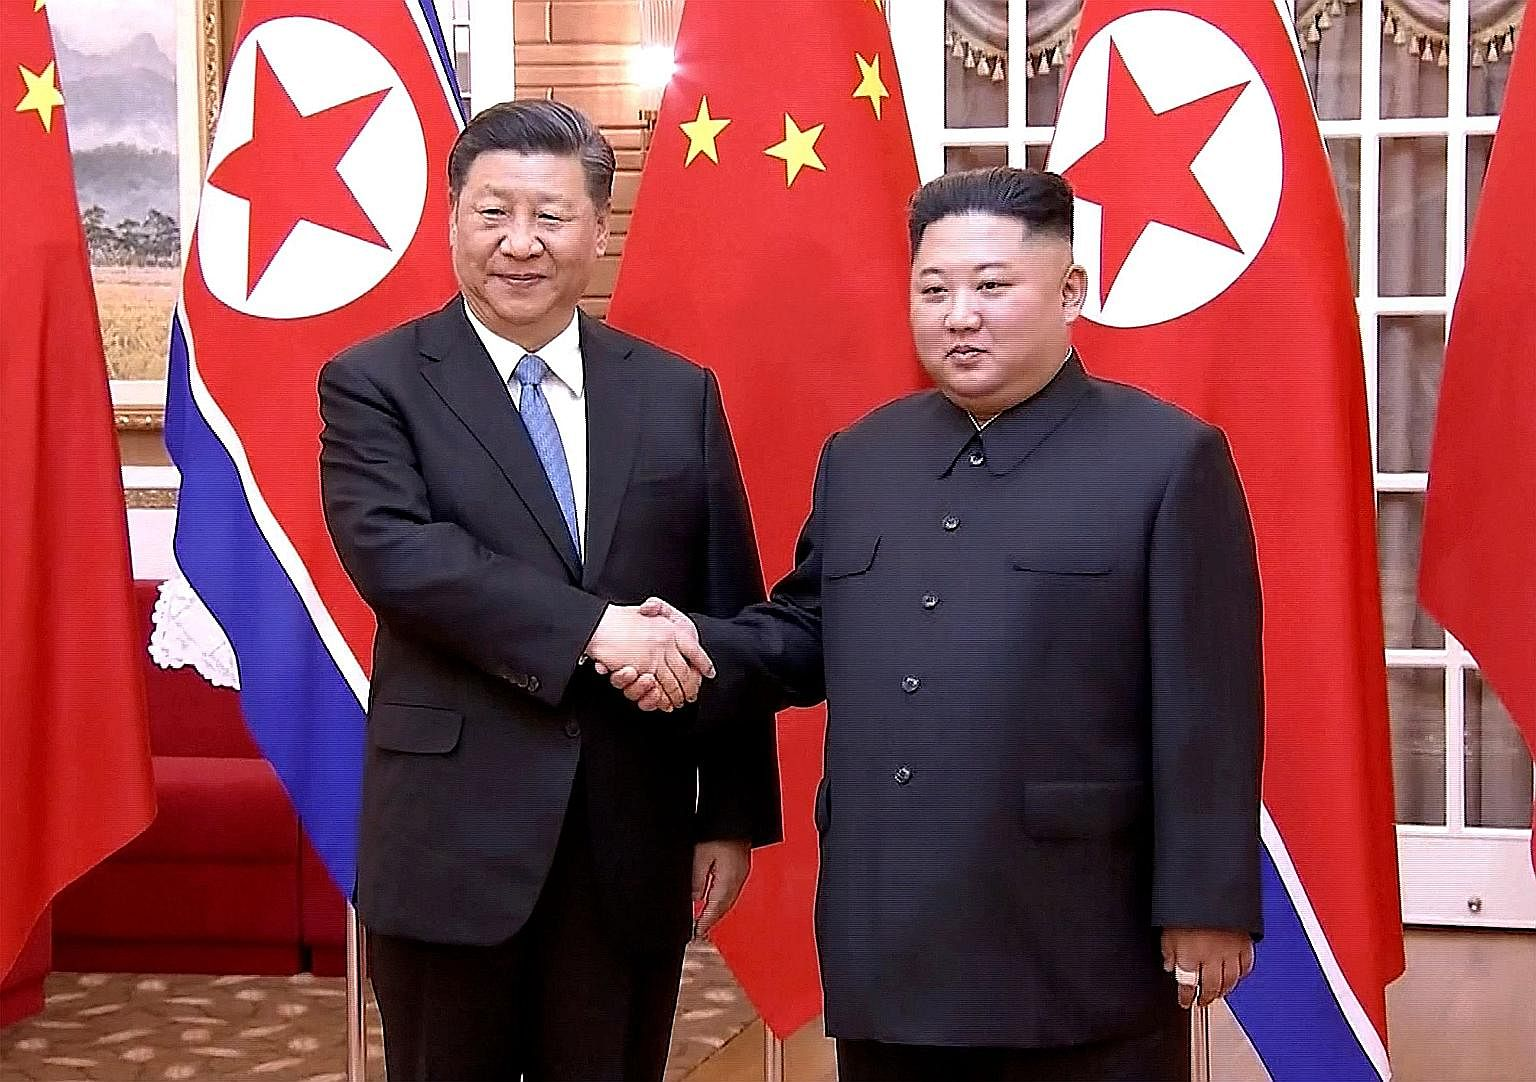 Chinese President Xi Jinping with North Korean leader Kim Jong Un in Pyongyang yesterday, in this screengrab taken off a video released by China's state broadcaster CCTV.